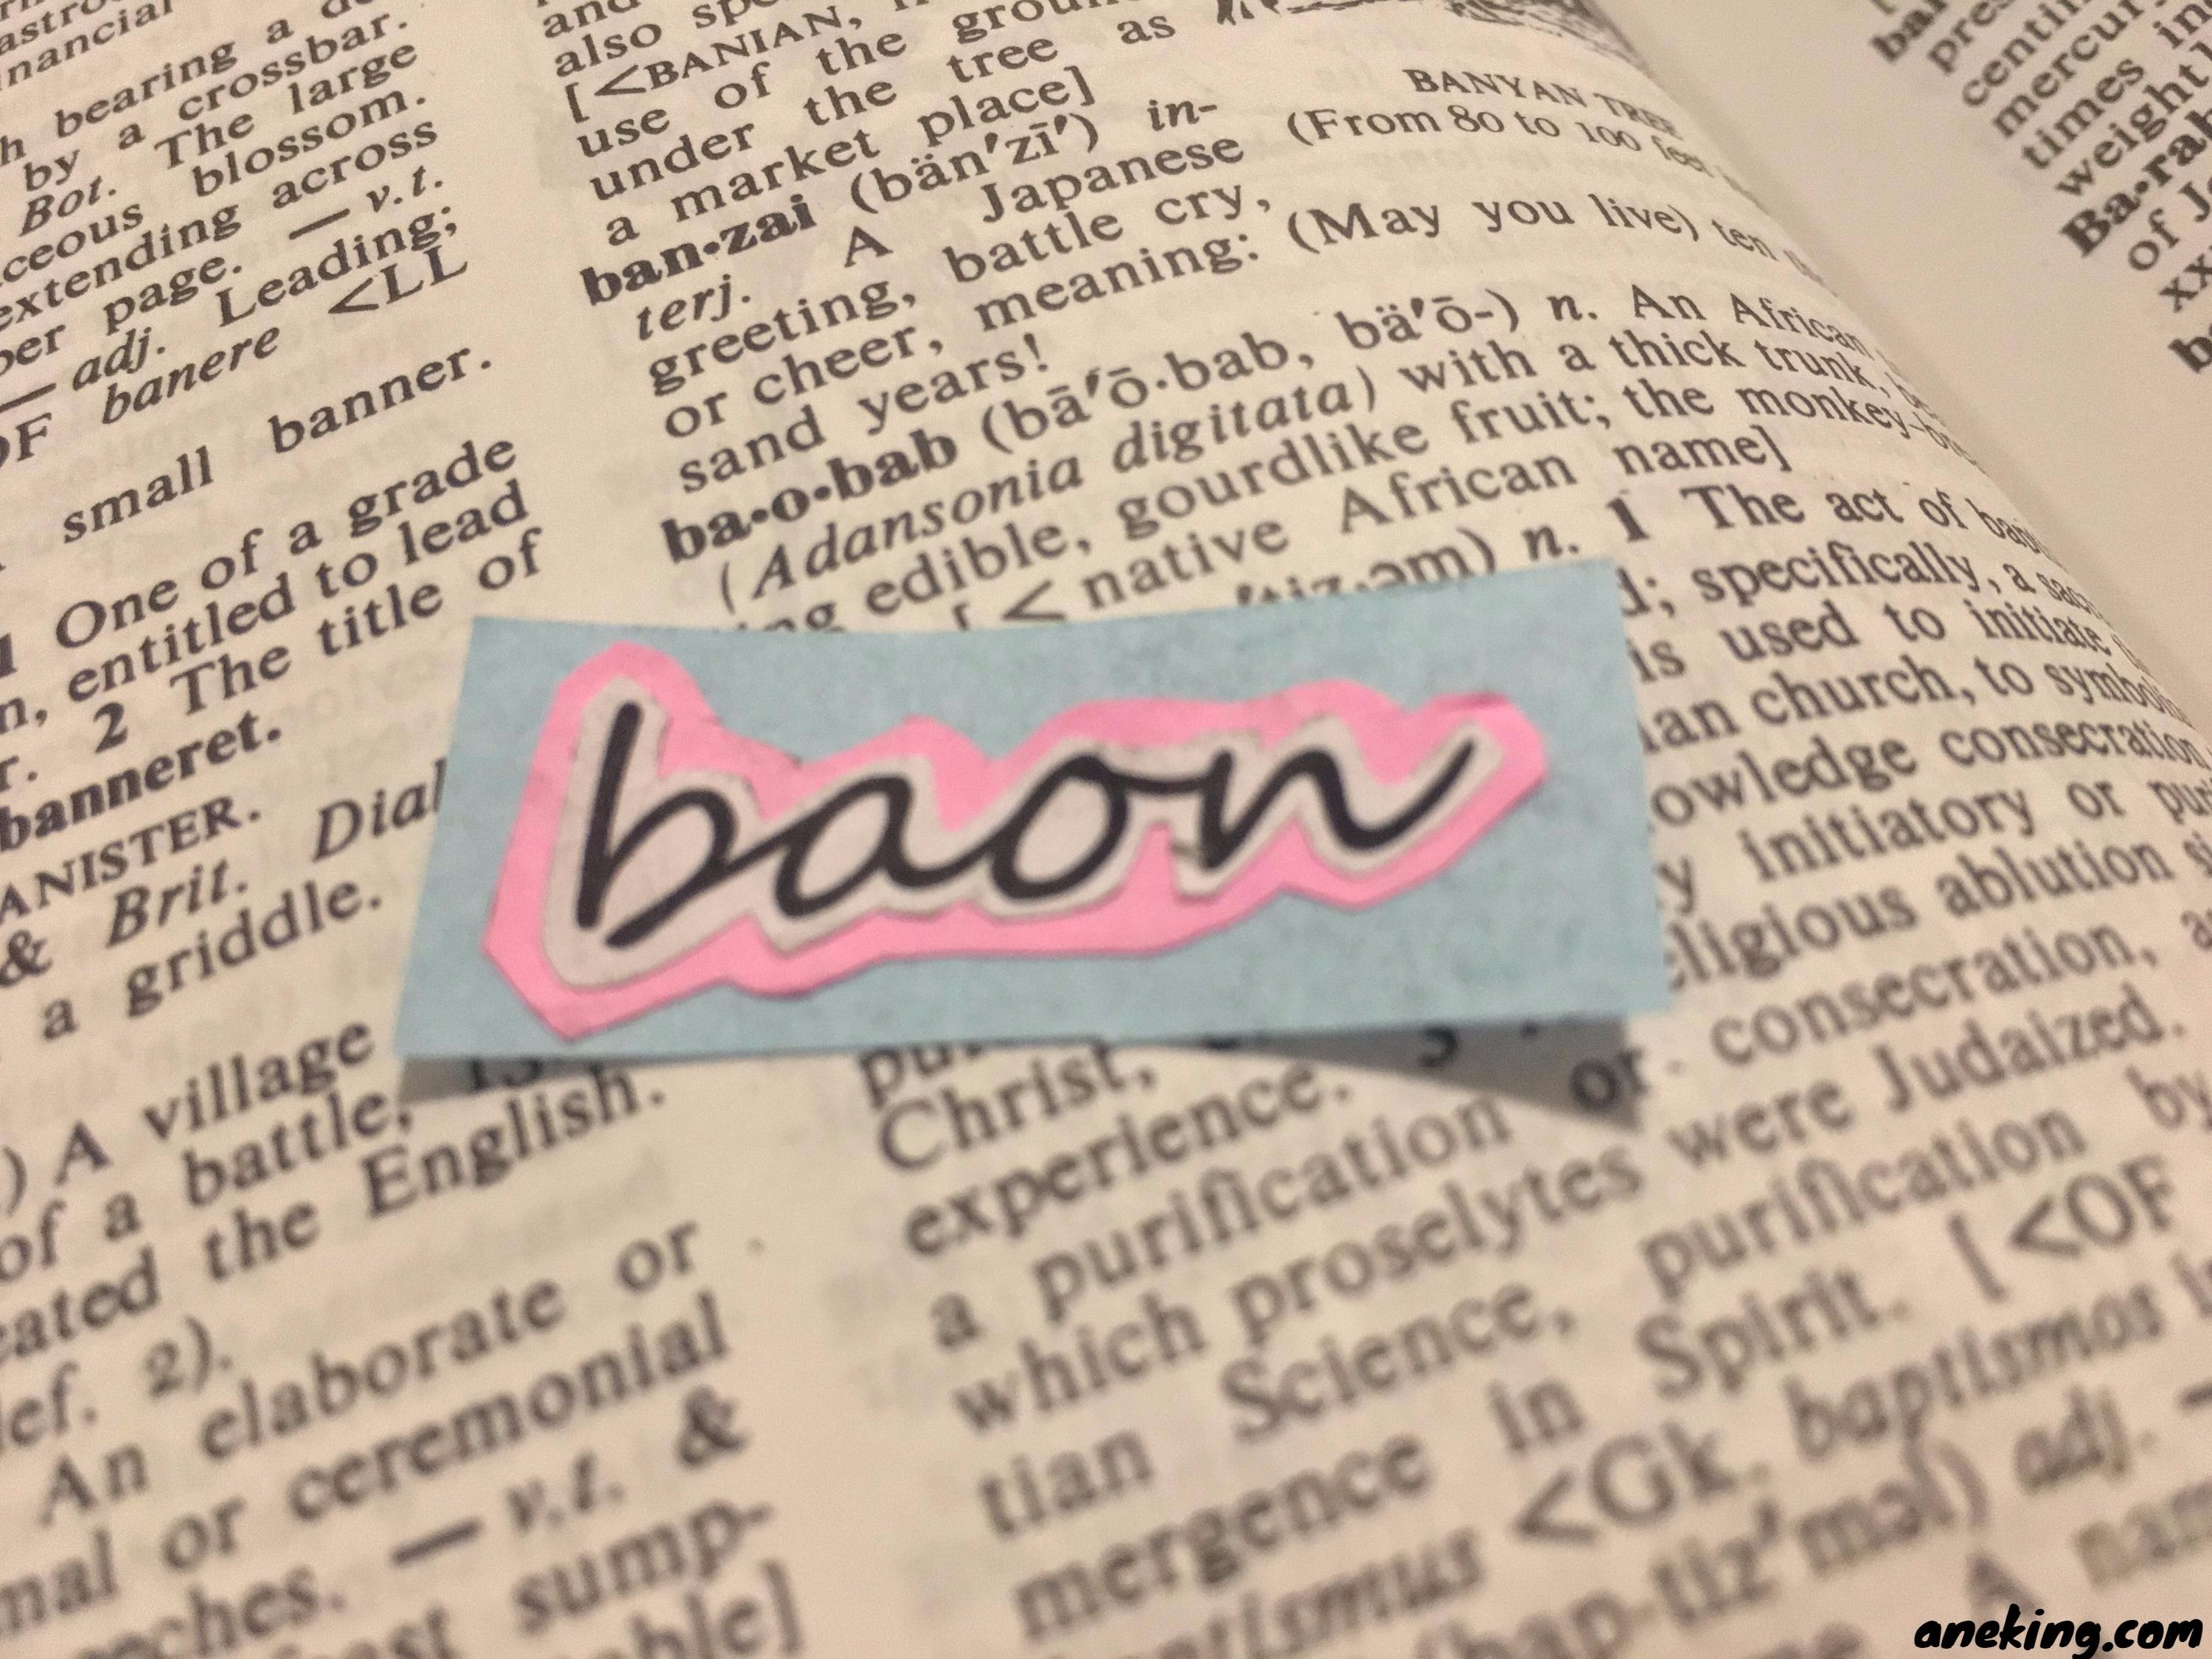 Filipino Words In English Dictionary - Ane Ventures